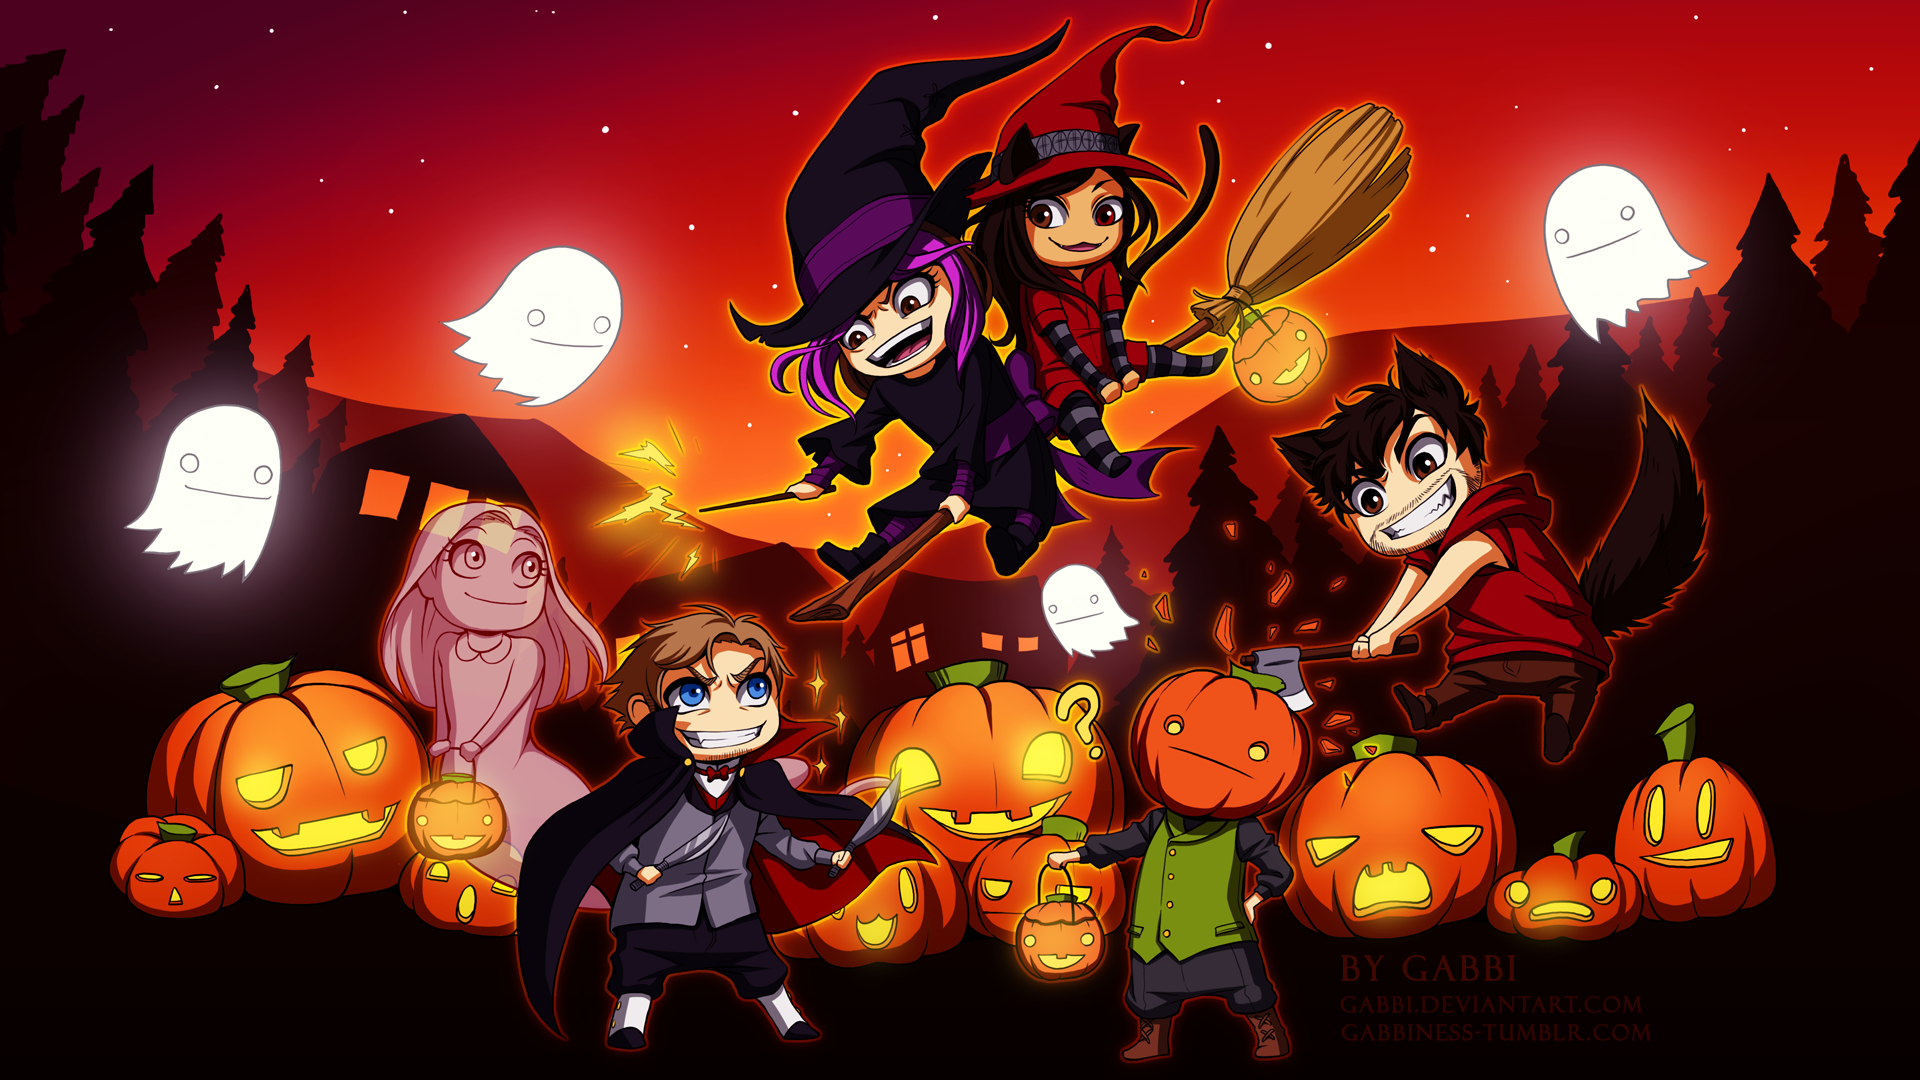 Victubia - Happy Halloween! by Gabbi